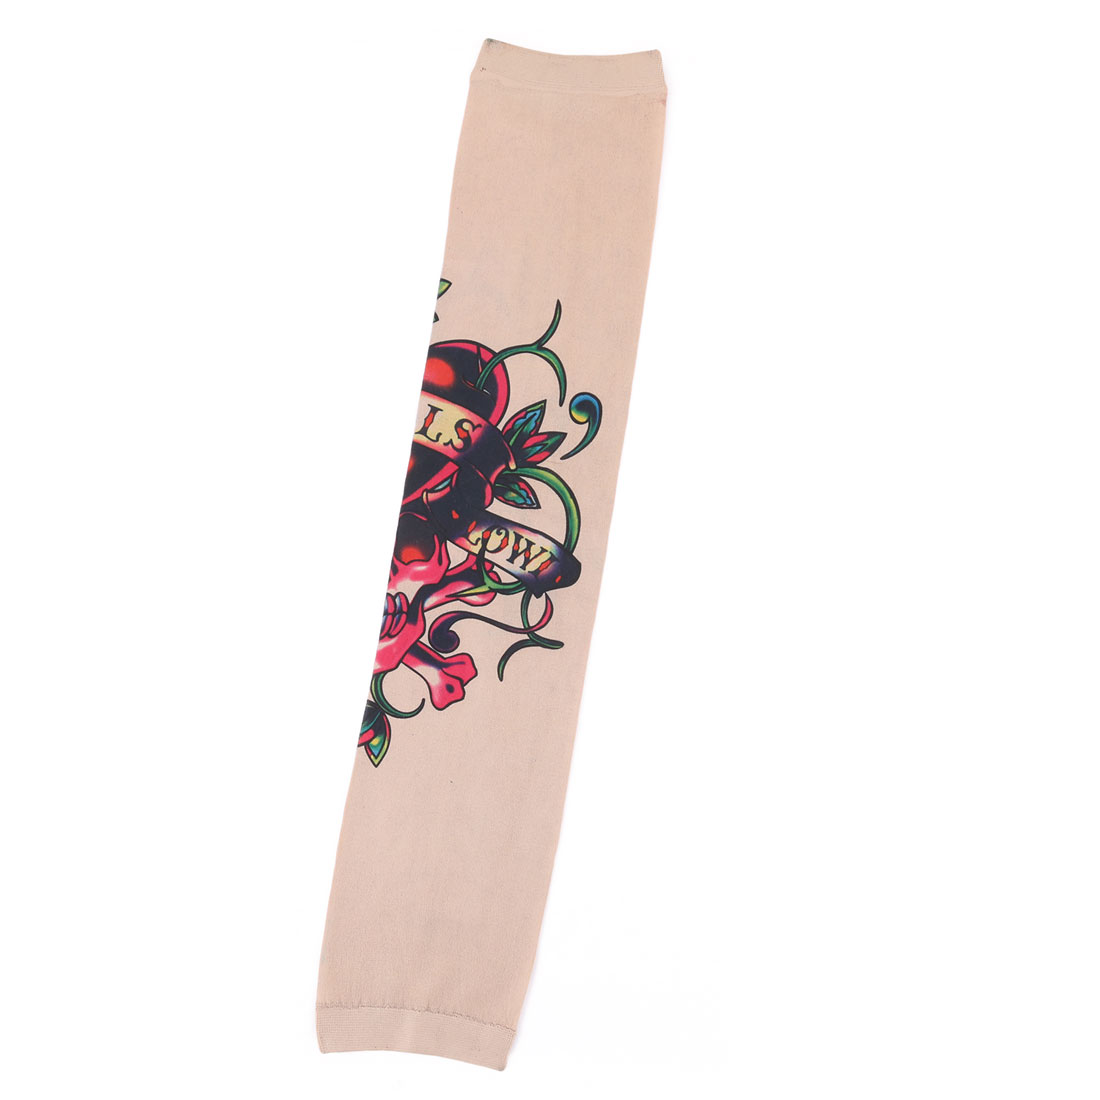 Outdoor Nylon Flower Print Personalized Fishing Arm Protector Sleeve Sleevelet